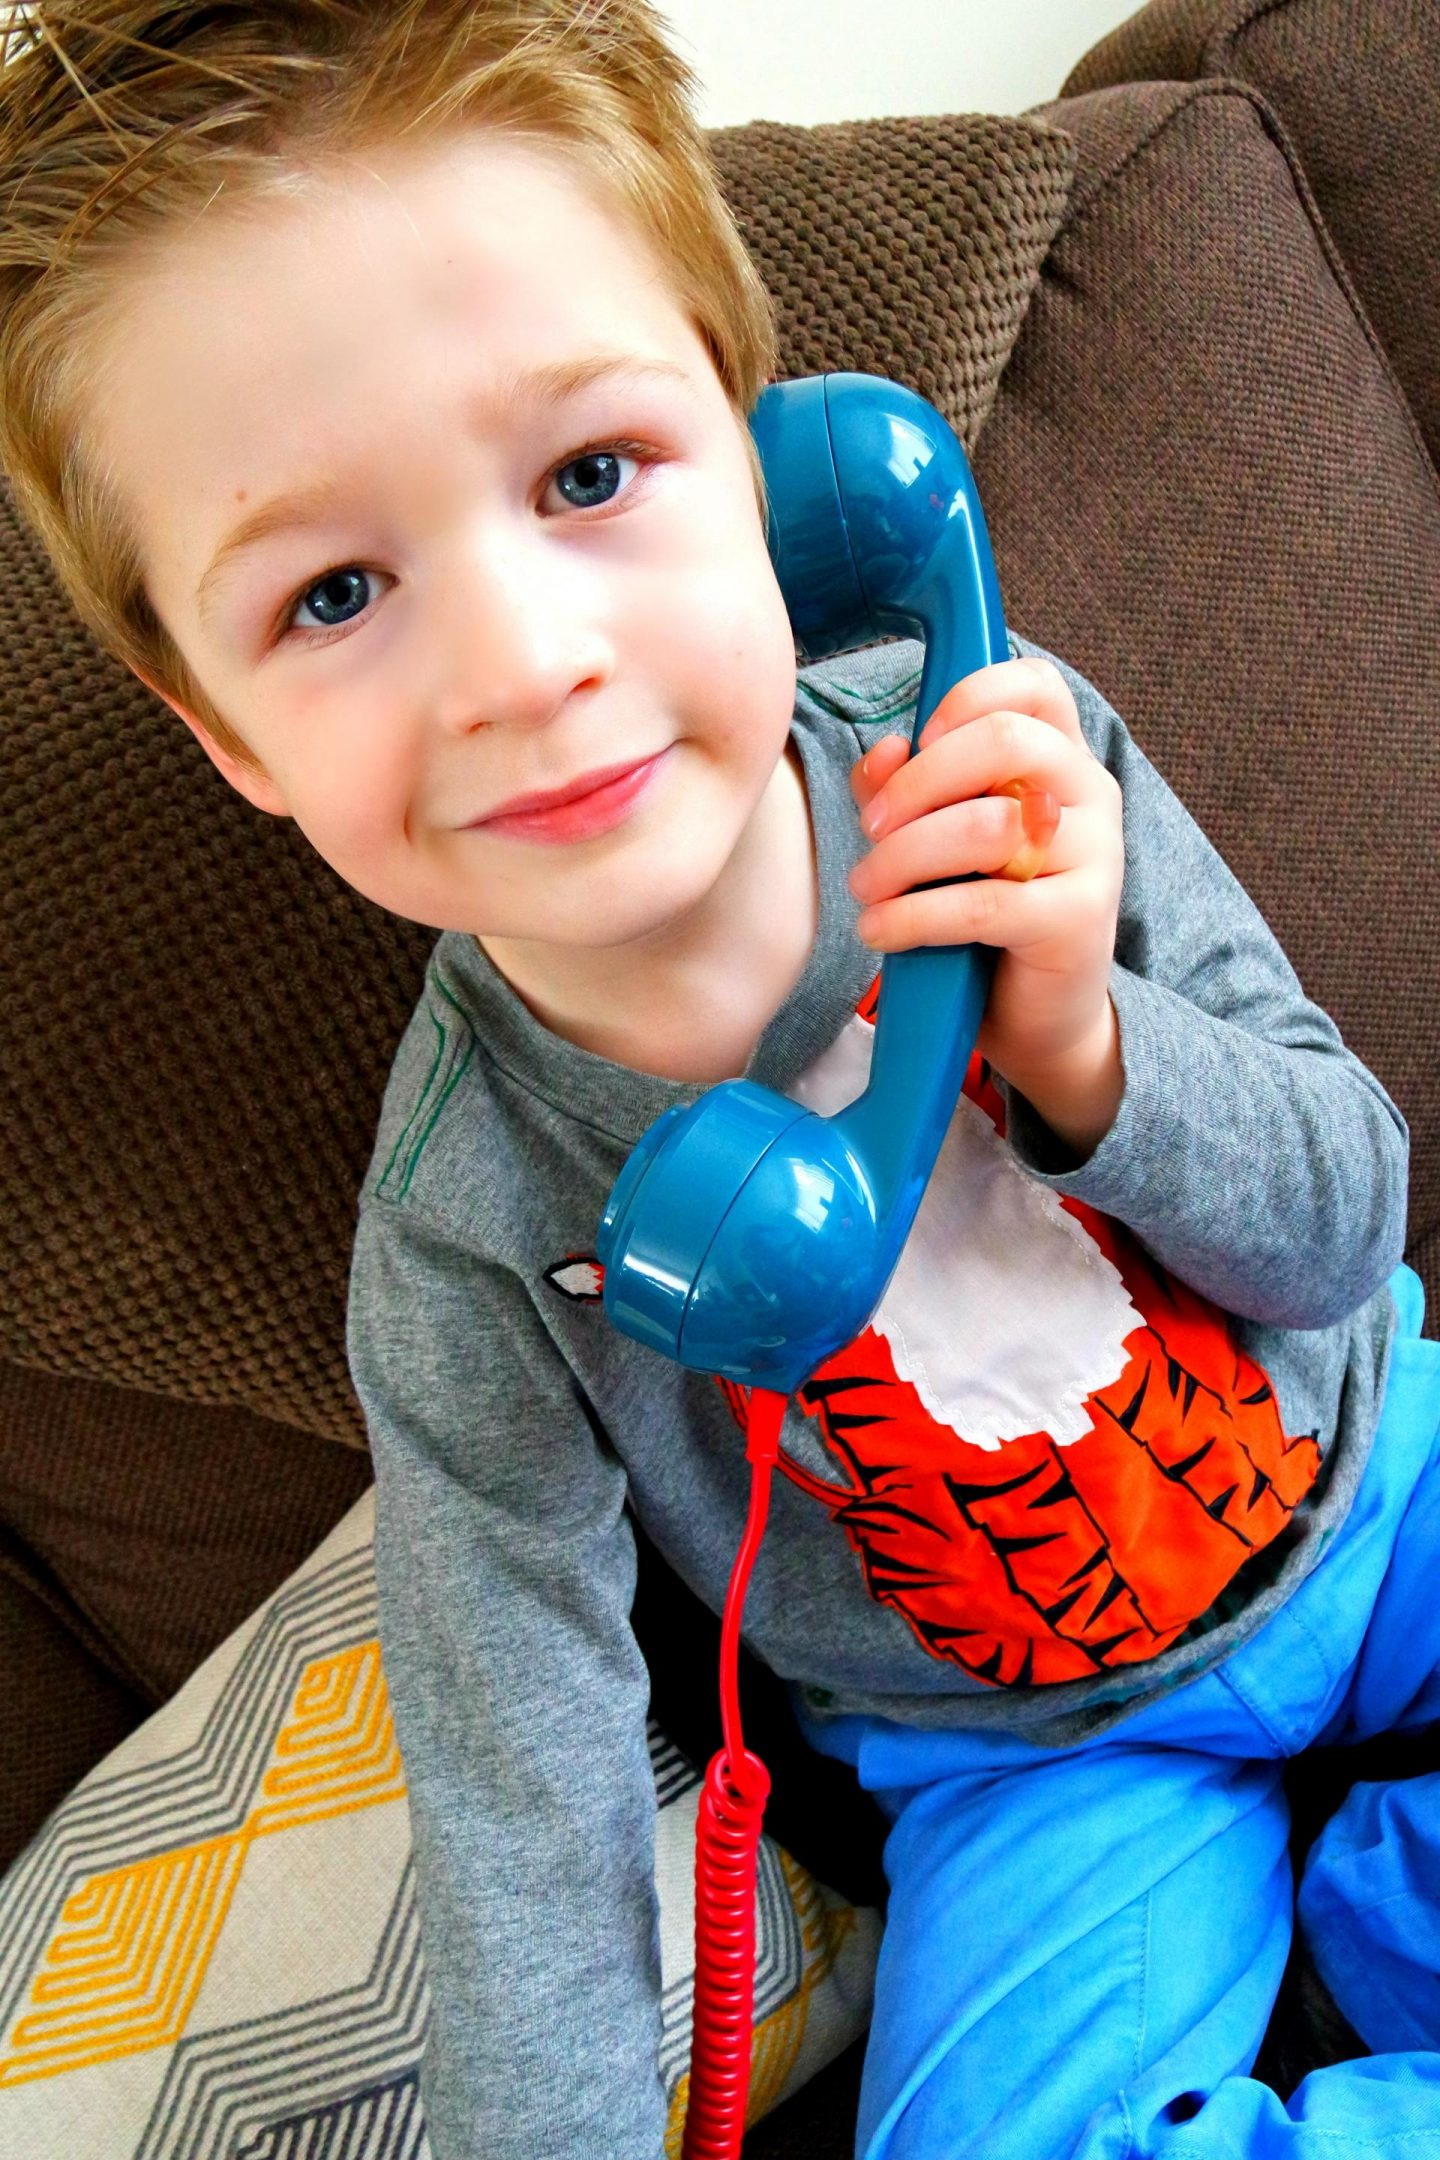 Little boy on a blue phone